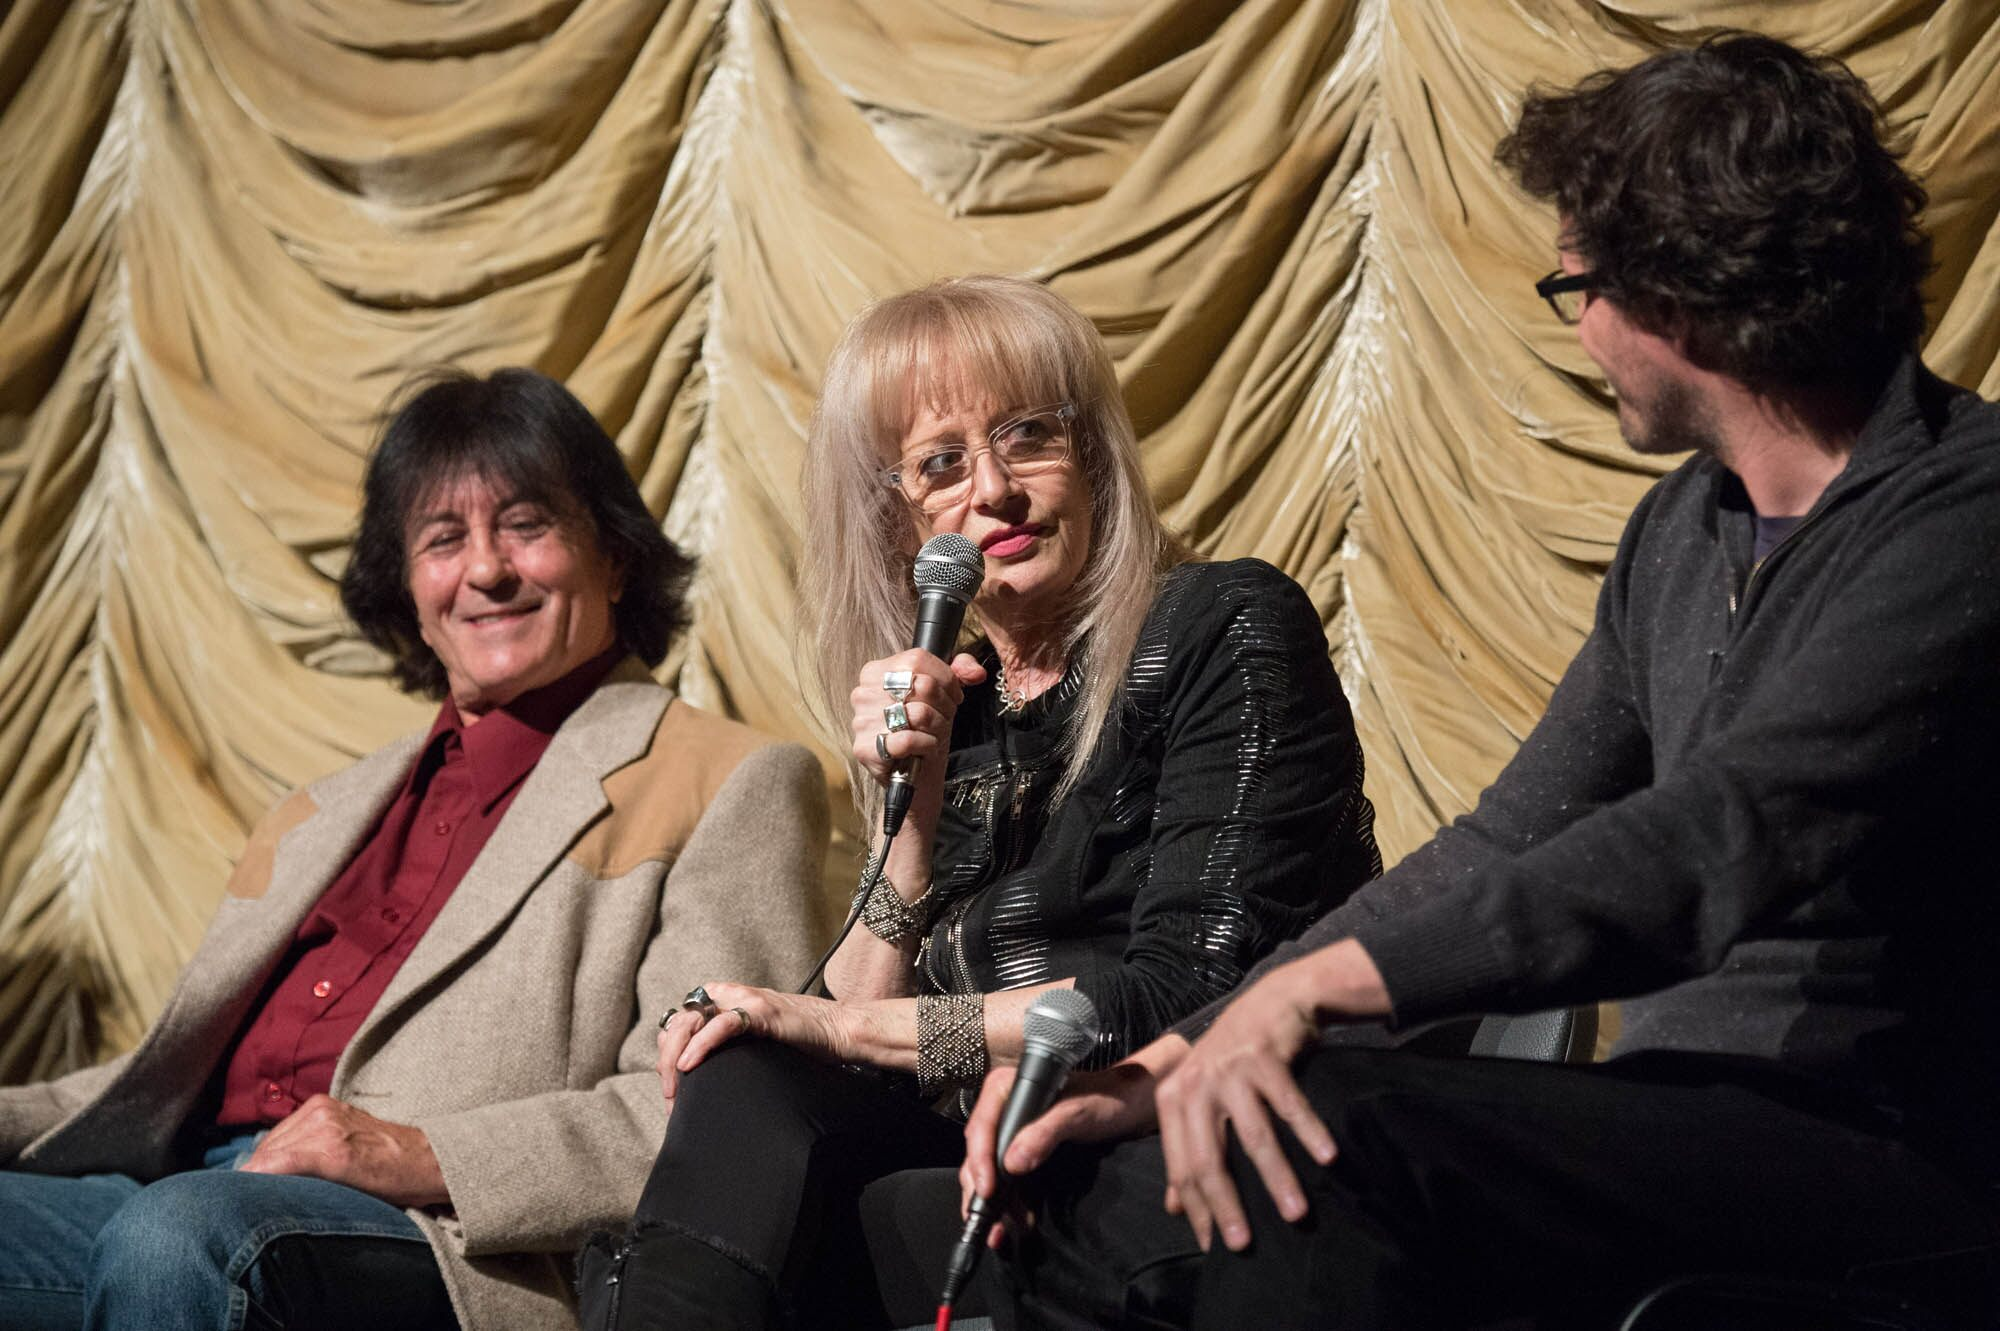 Musician Lee Ving (left), director Penelope Spheeris (center) and host Mark Toscano